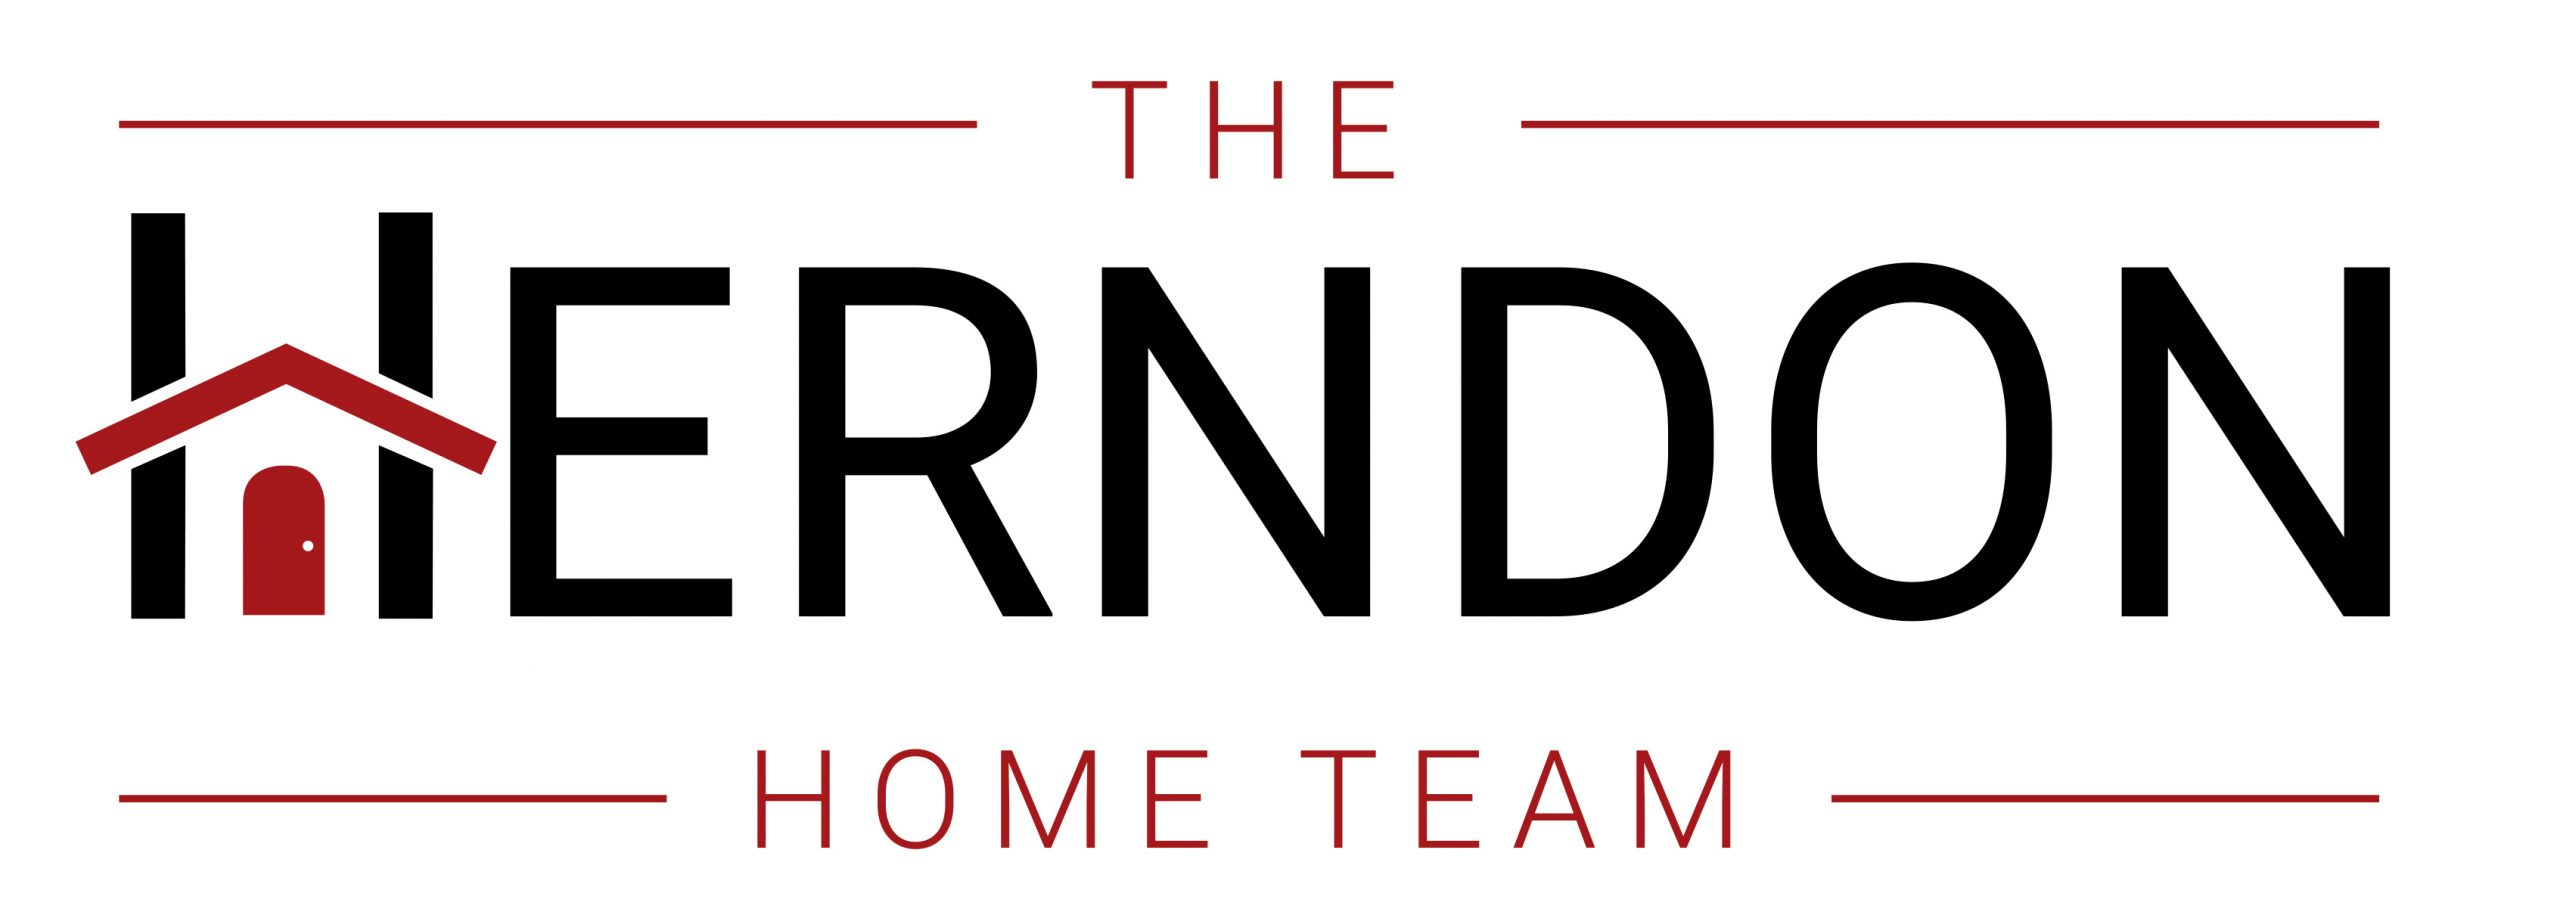 The Herndon Home Team_Logo_102020_09_FINAL-1